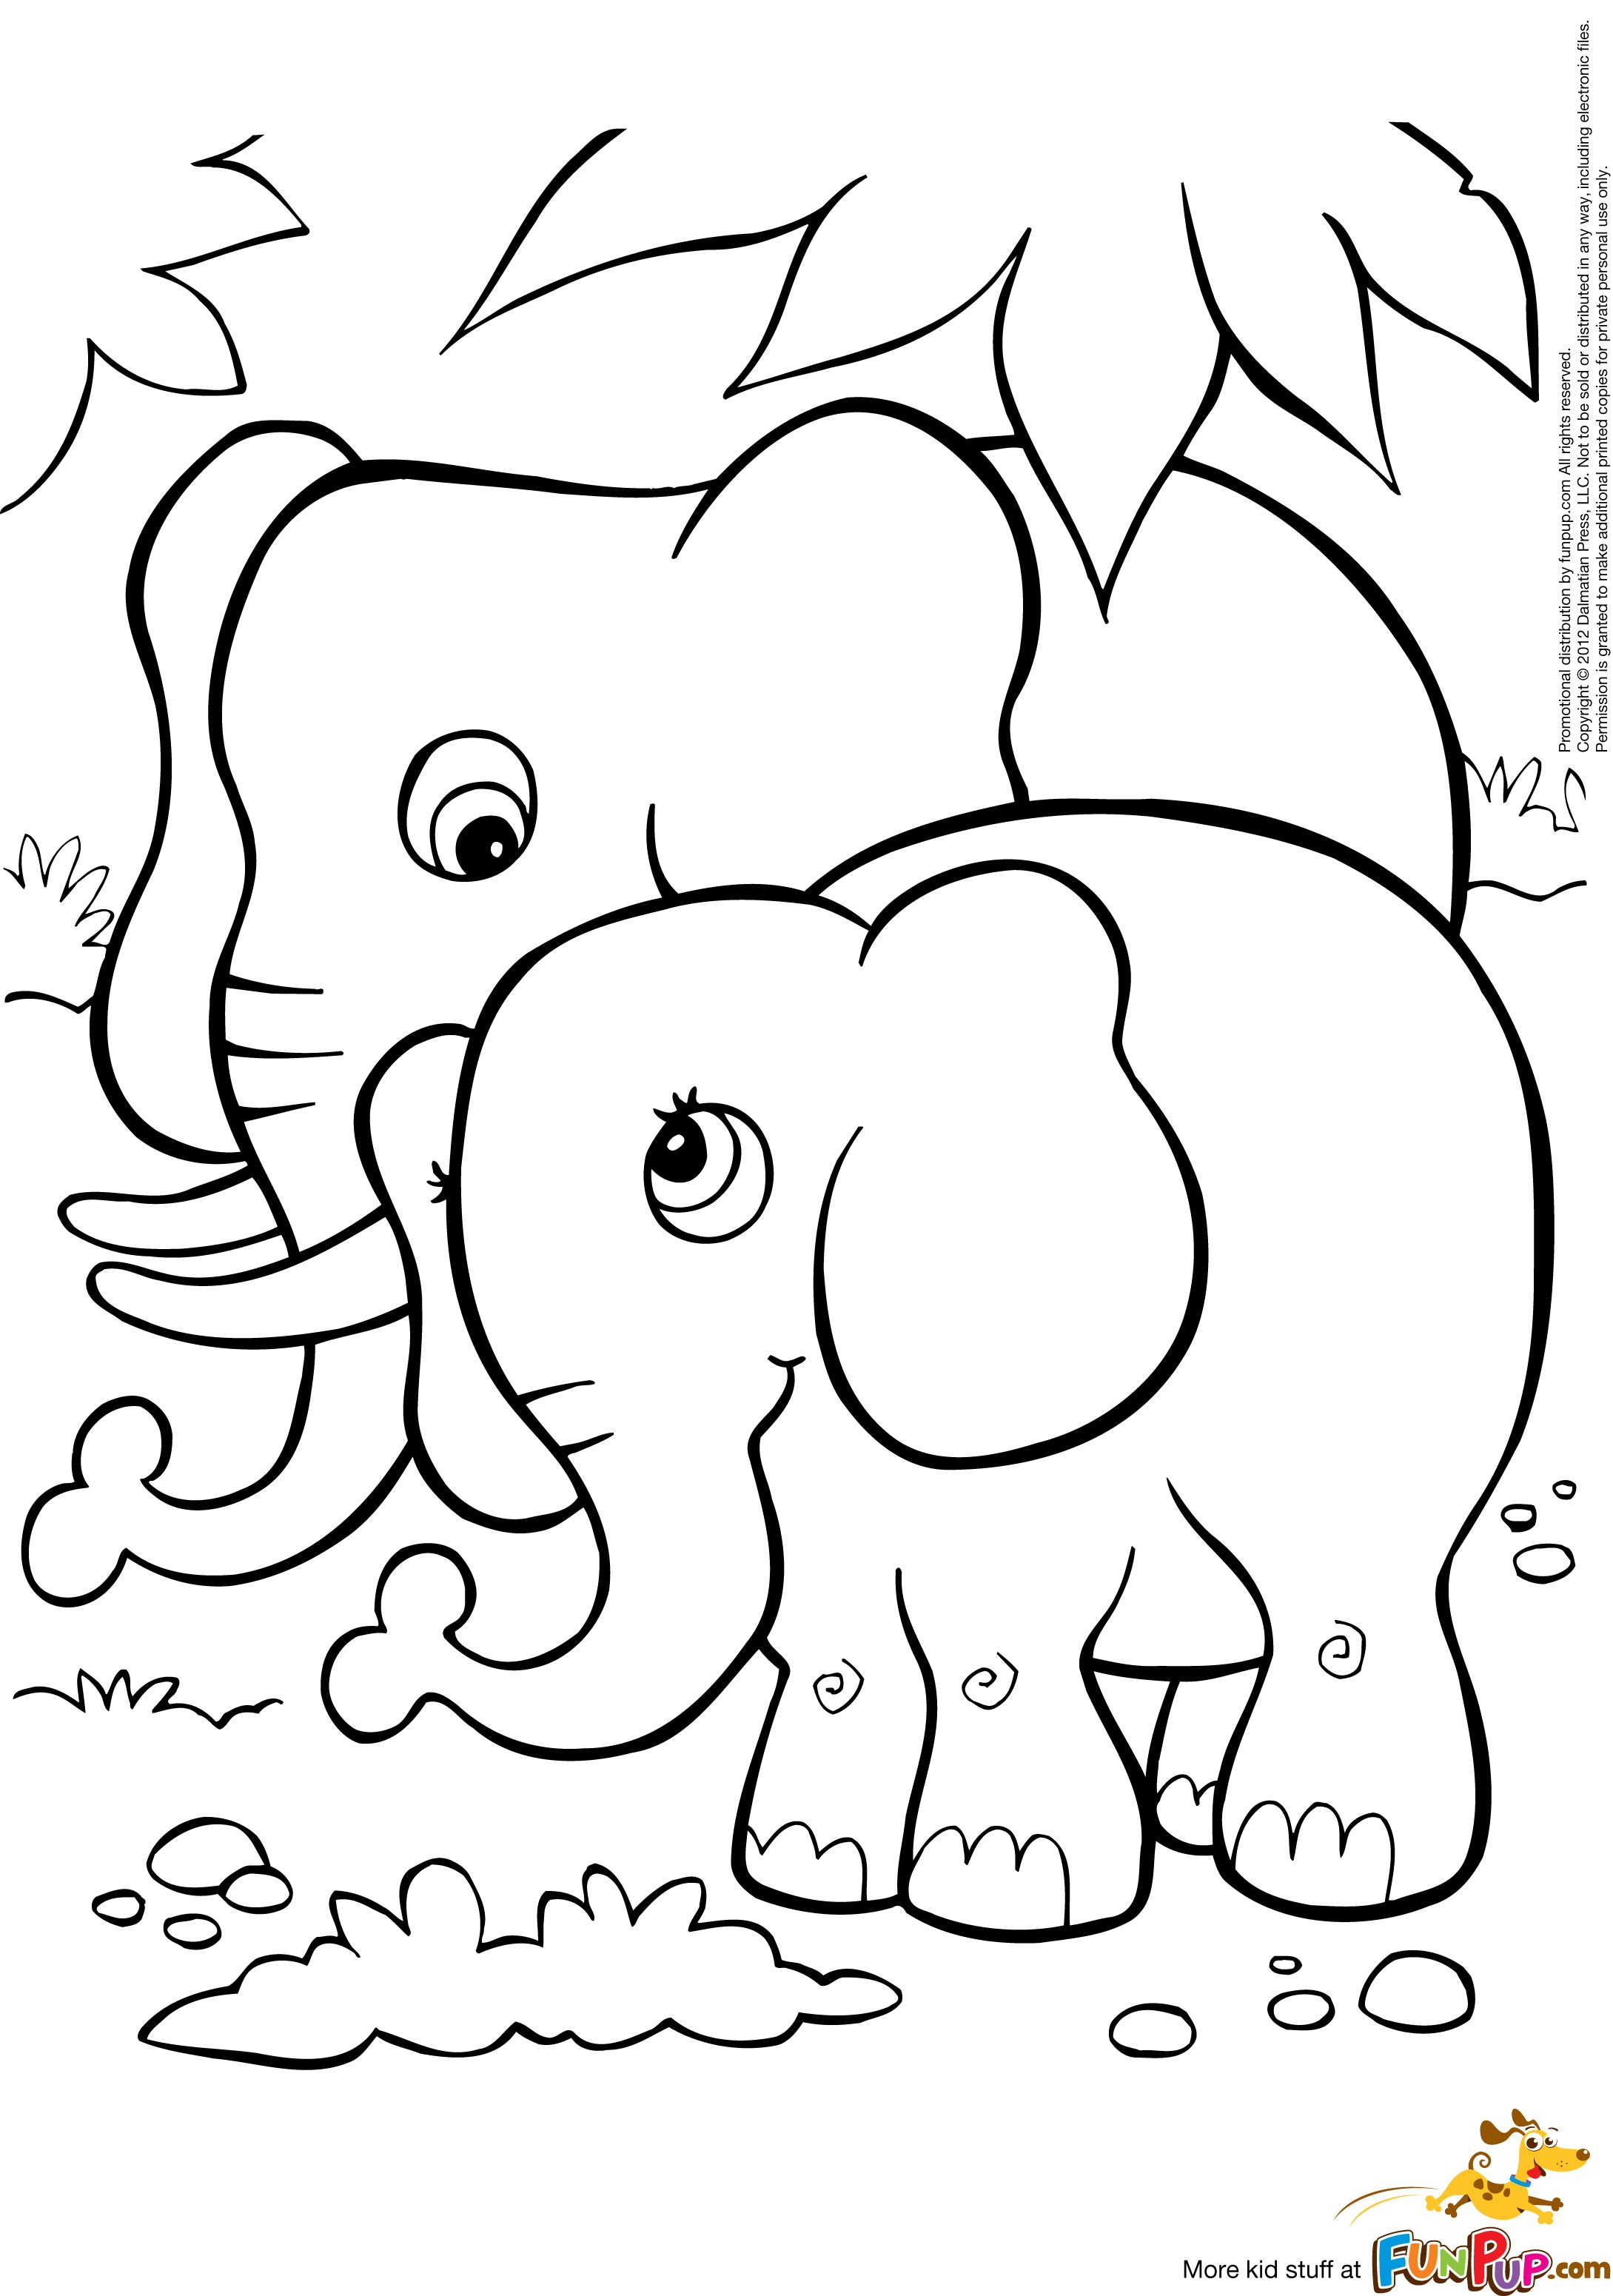 two cute Elephants coloring page